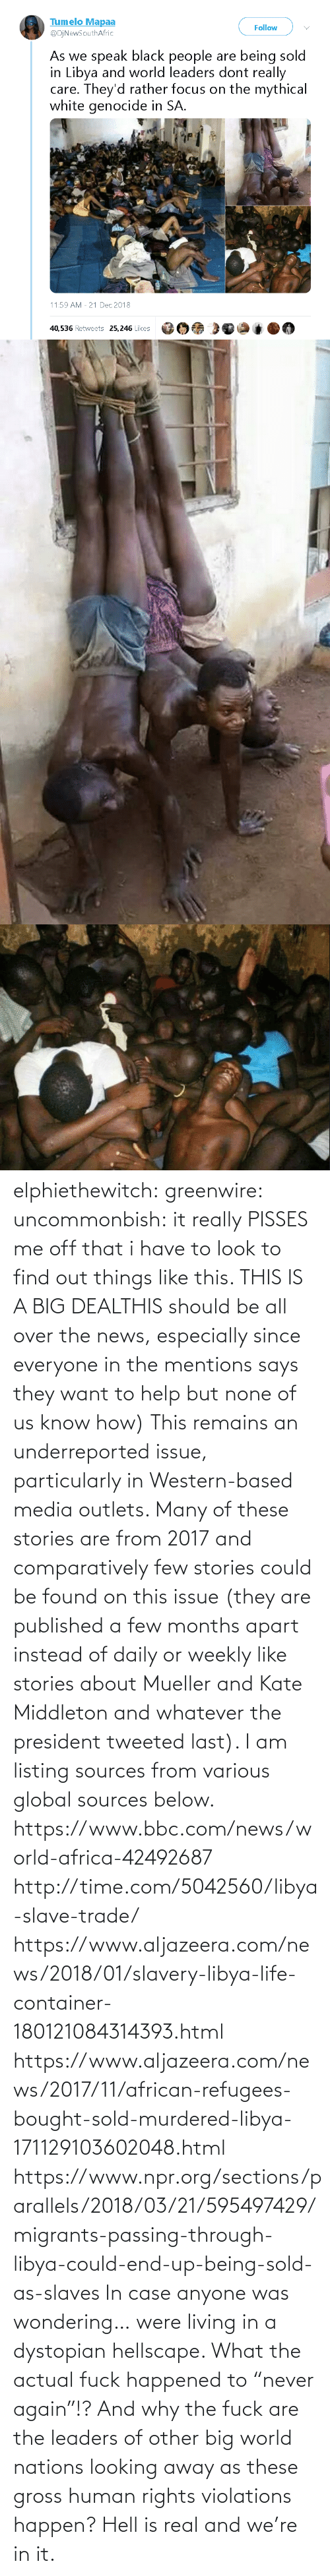 "away: elphiethewitch: greenwire:  uncommonbish:  it really PISSES me off that i have to look to find out things like this. THIS IS A BIG DEALTHIS should be all over the news, especially since everyone in the mentions says they want to help but none of us know how)  This remains an underreported issue, particularly in Western-based media outlets. Many of these stories are from 2017 and comparatively few stories could be found on this issue (they are published a few months apart instead of daily or weekly like stories about Mueller and Kate Middleton and whatever the president tweeted last). I am listing sources from various global sources below.  https://www.bbc.com/news/world-africa-42492687 http://time.com/5042560/libya-slave-trade/ https://www.aljazeera.com/news/2018/01/slavery-libya-life-container-180121084314393.html https://www.aljazeera.com/news/2017/11/african-refugees-bought-sold-murdered-libya-171129103602048.html https://www.npr.org/sections/parallels/2018/03/21/595497429/migrants-passing-through-libya-could-end-up-being-sold-as-slaves   In case anyone was wondering… were living in a dystopian hellscape.  What the actual fuck happened to ""never again""!? And why the fuck are the leaders of other big world nations looking away as these gross human rights violations happen?  Hell is real and we're in it."